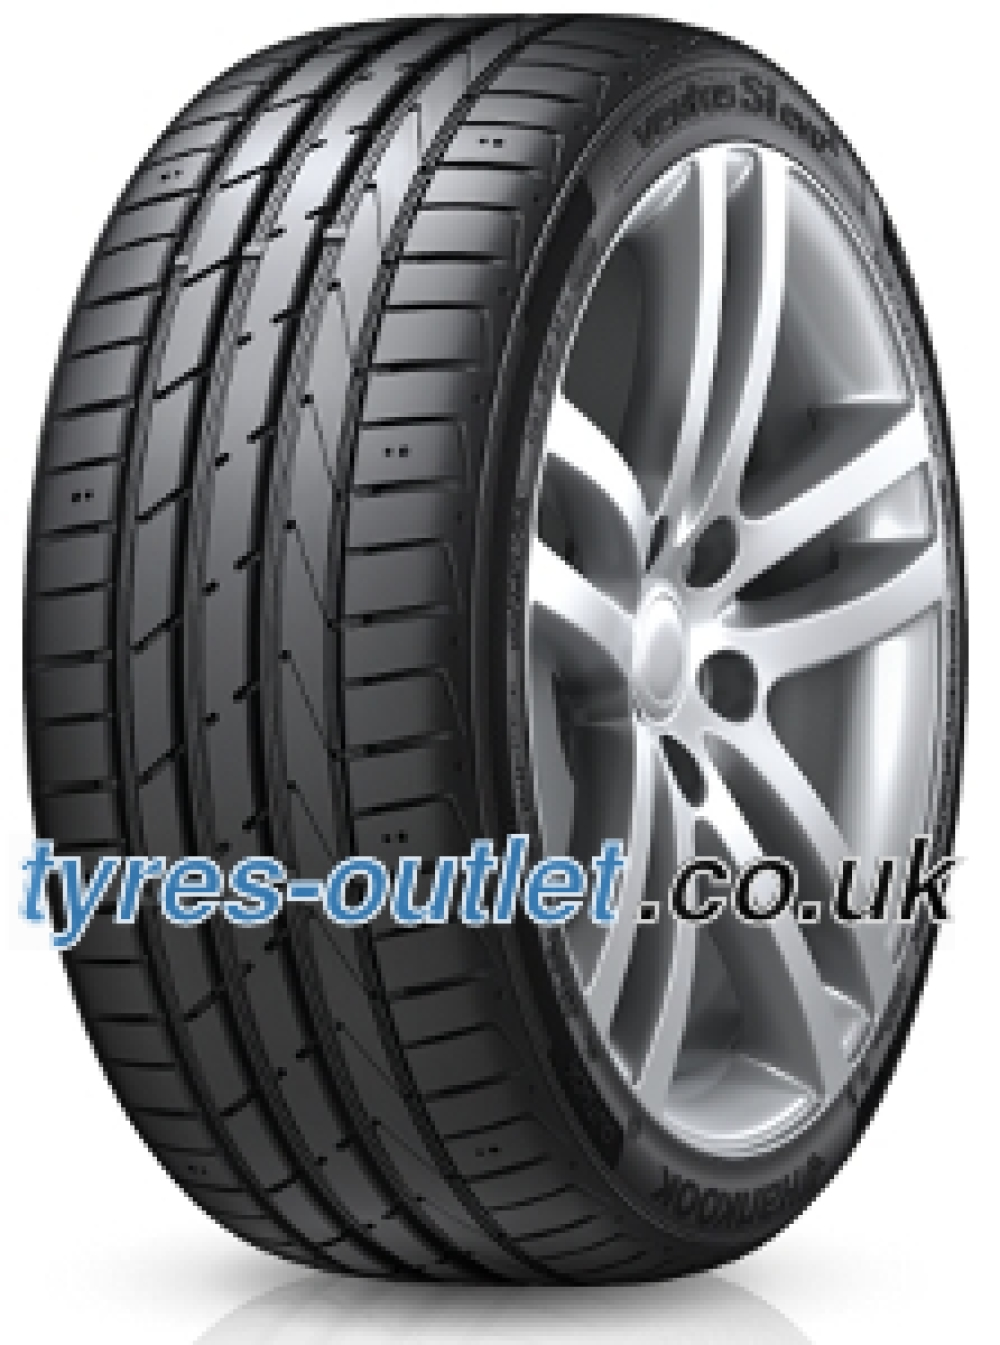 Hankook Ventus S1 Evo 2 K117 B HRS ( 225/35 R19 88Y XL with rim protection (MFS), runflat SBL )